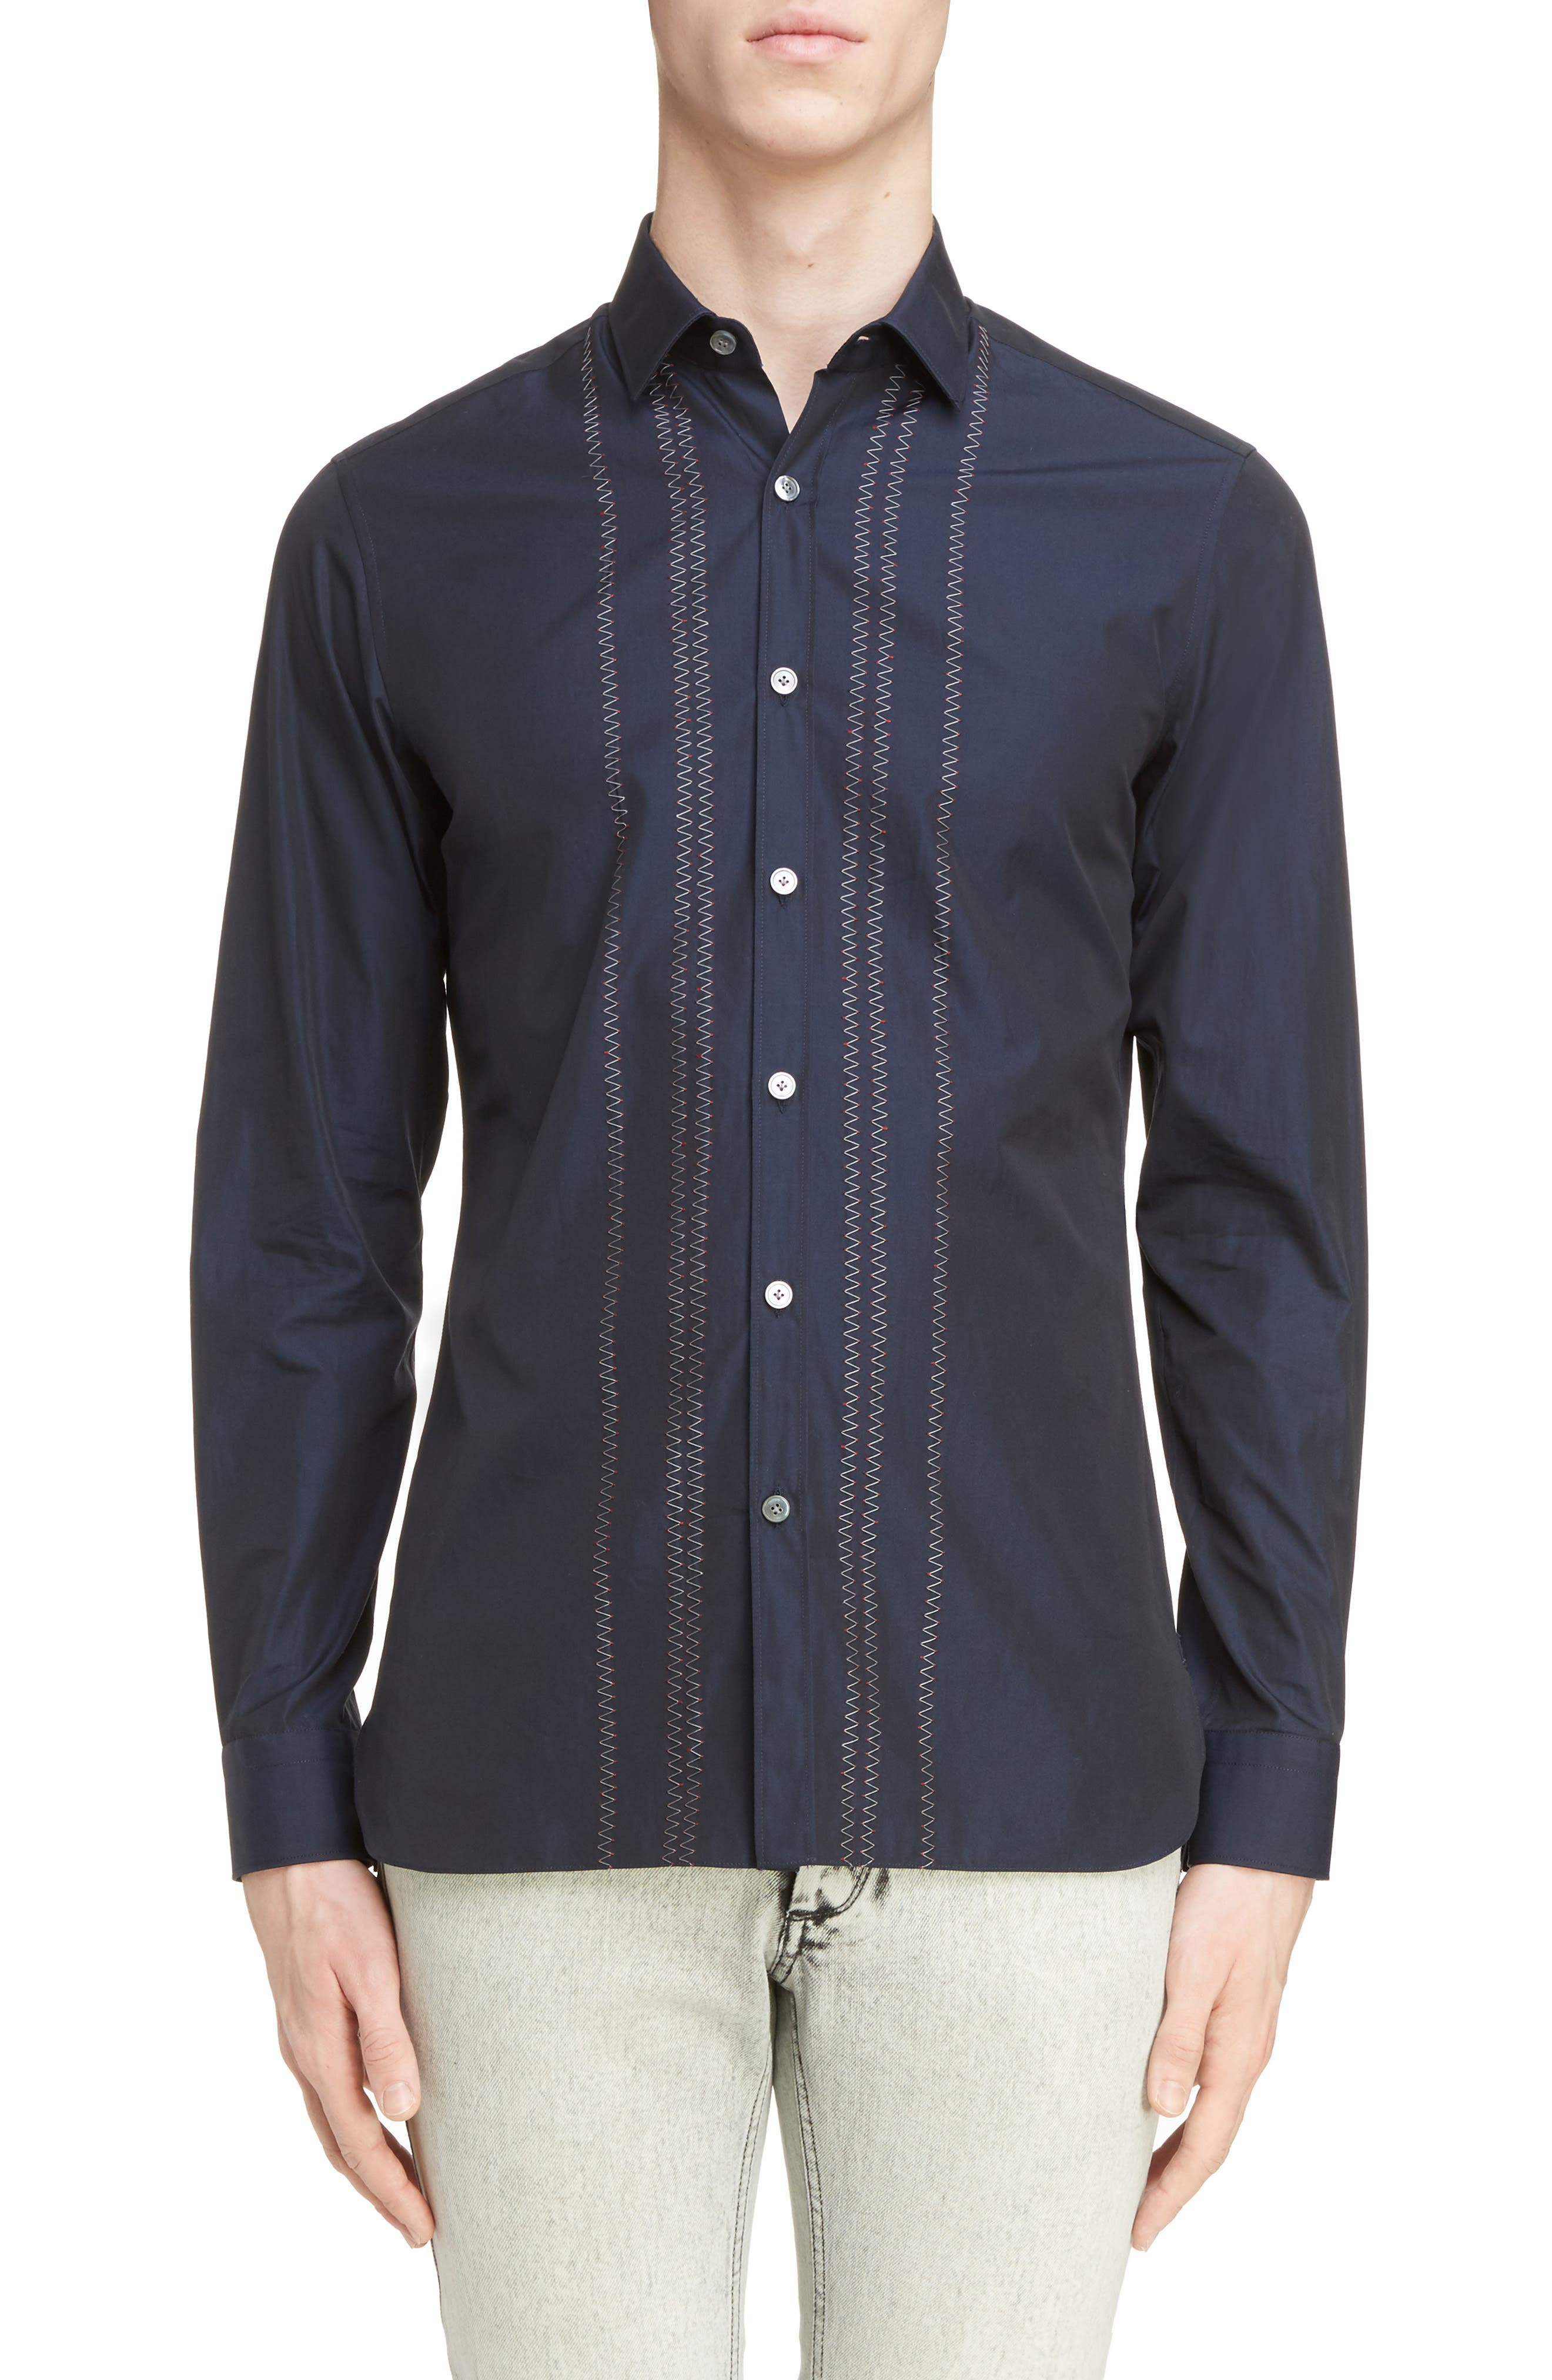 Alternate Image 1 Selected - Lanvin Zigzag Embroidered Cotton & Silk Sport Shirt